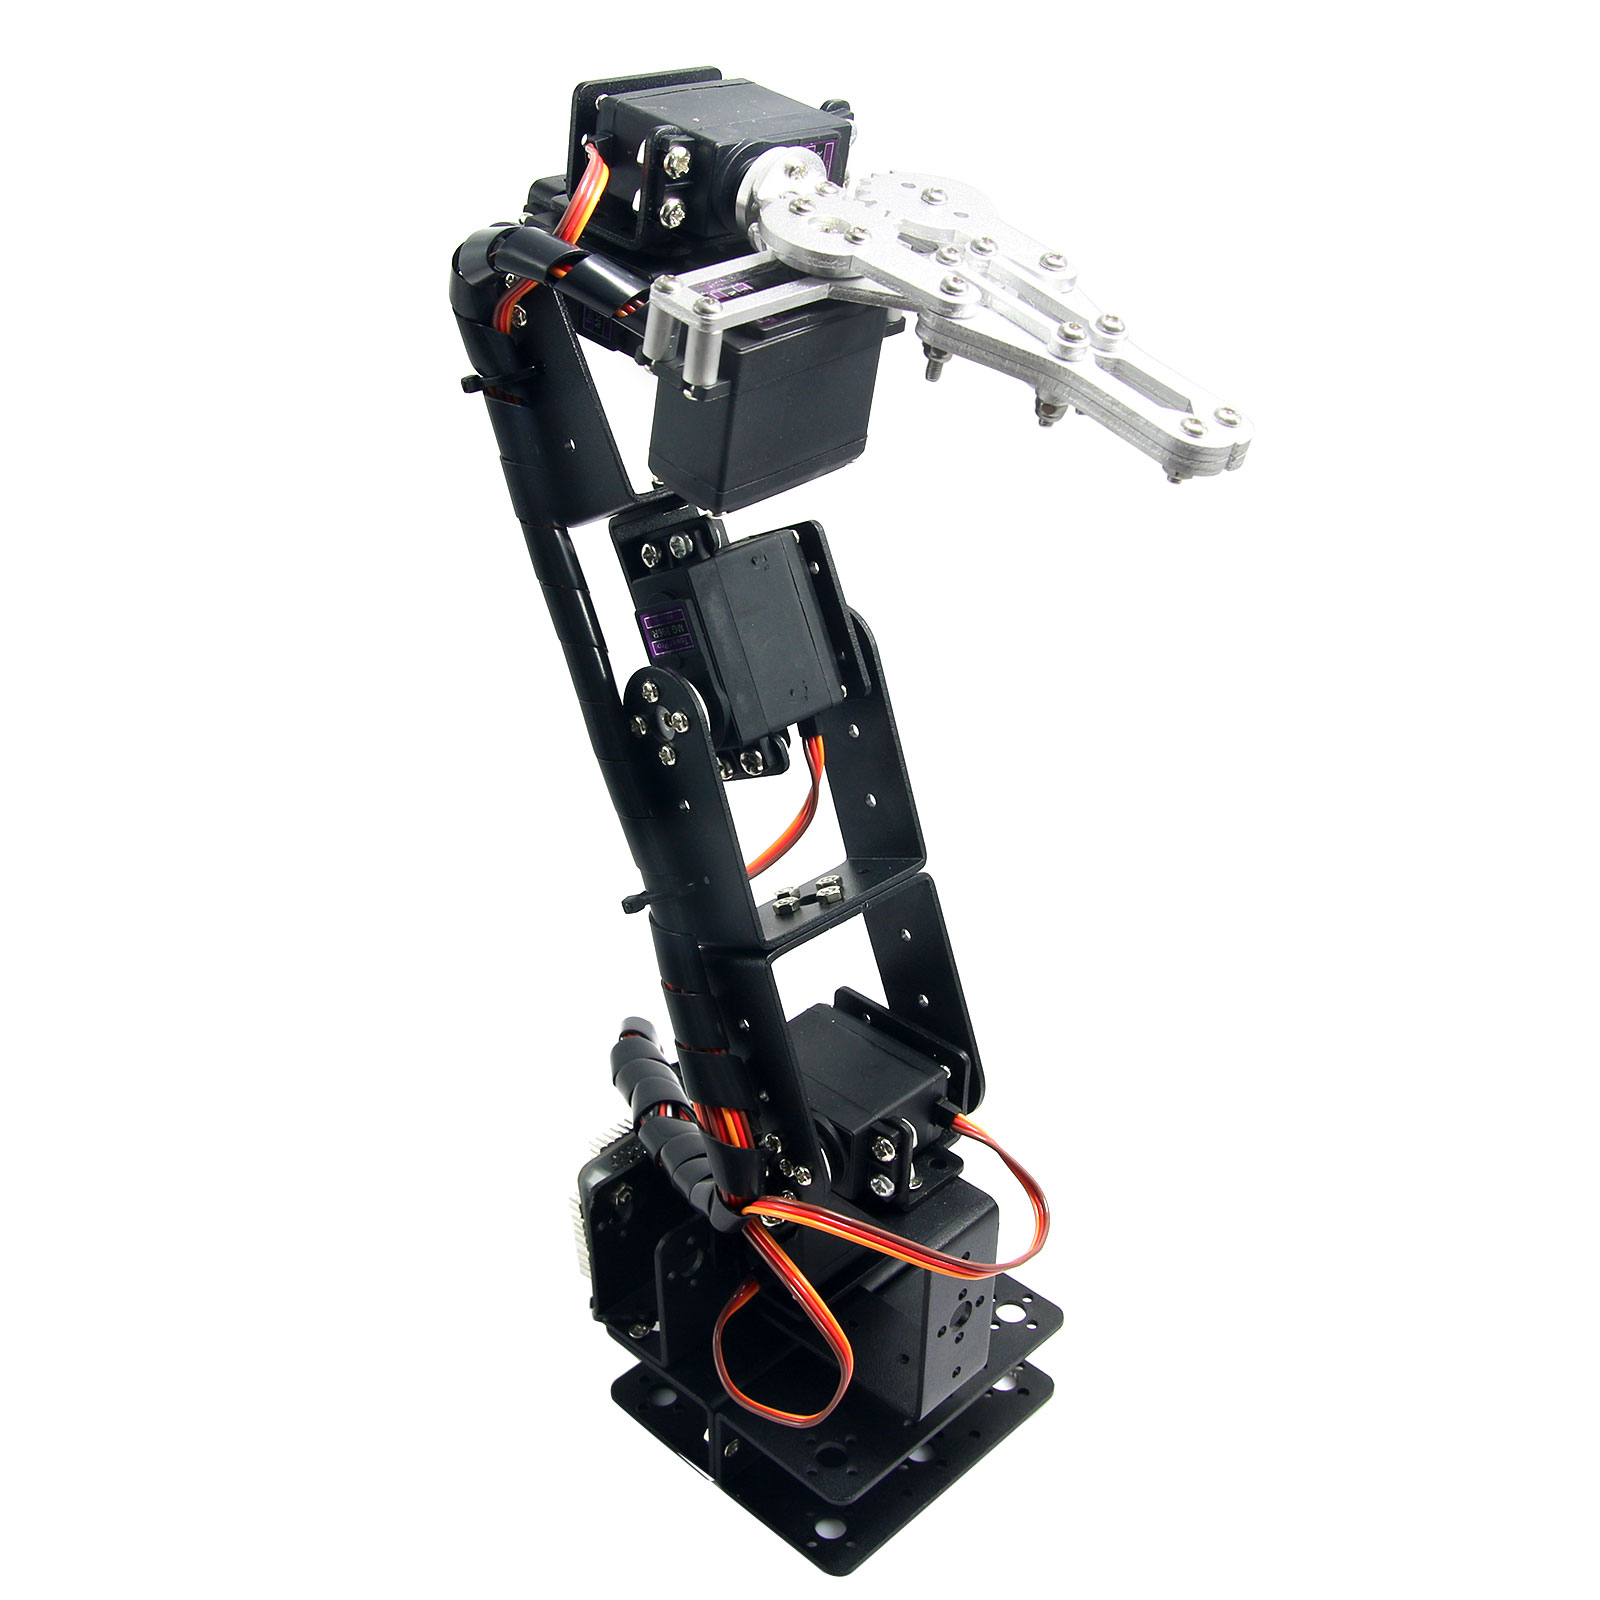 6D-3U-S Robot 6 DOF Aluminium Clamp Claw Mount kit Mechanical Robotic Arm & 6pcs MG996R Servos & Metal Servo Horn 6dof robotic aluminium robot arm clamp claw